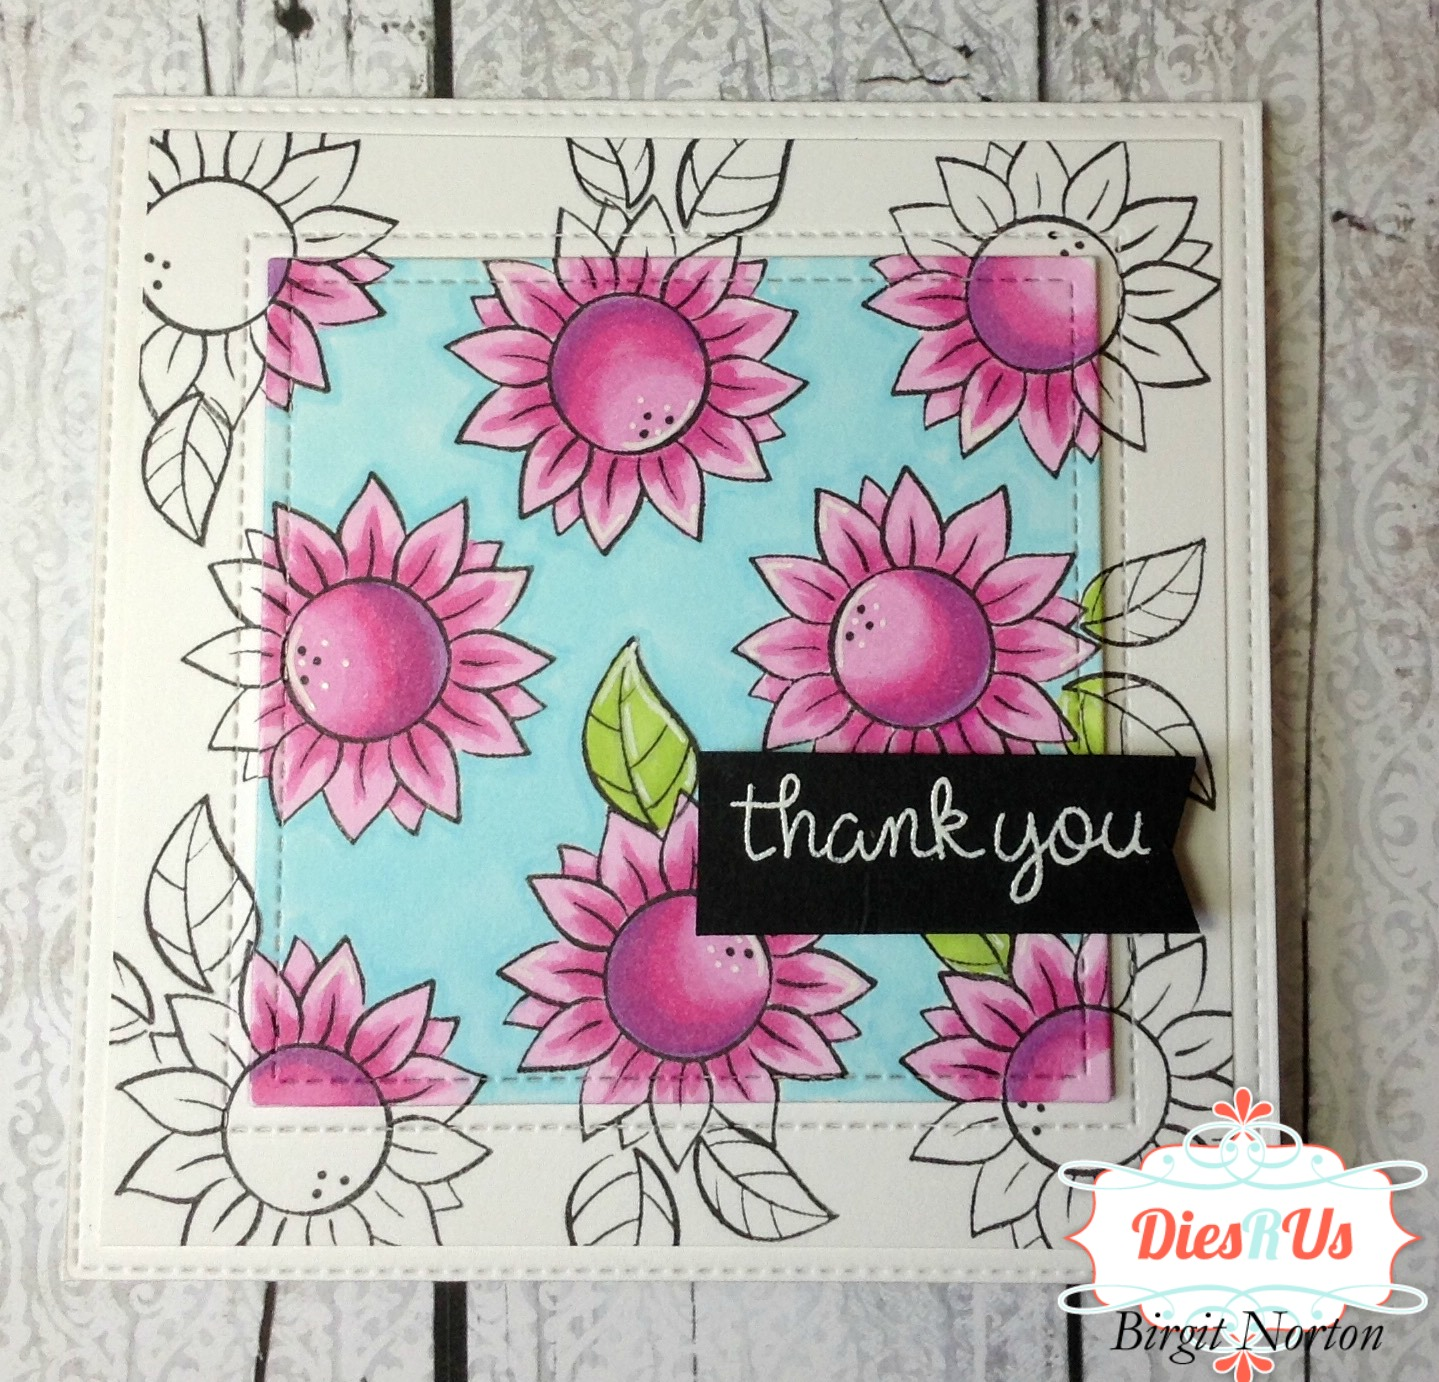 Dies R Us: Focal Point Coloring with Lawn Fawn